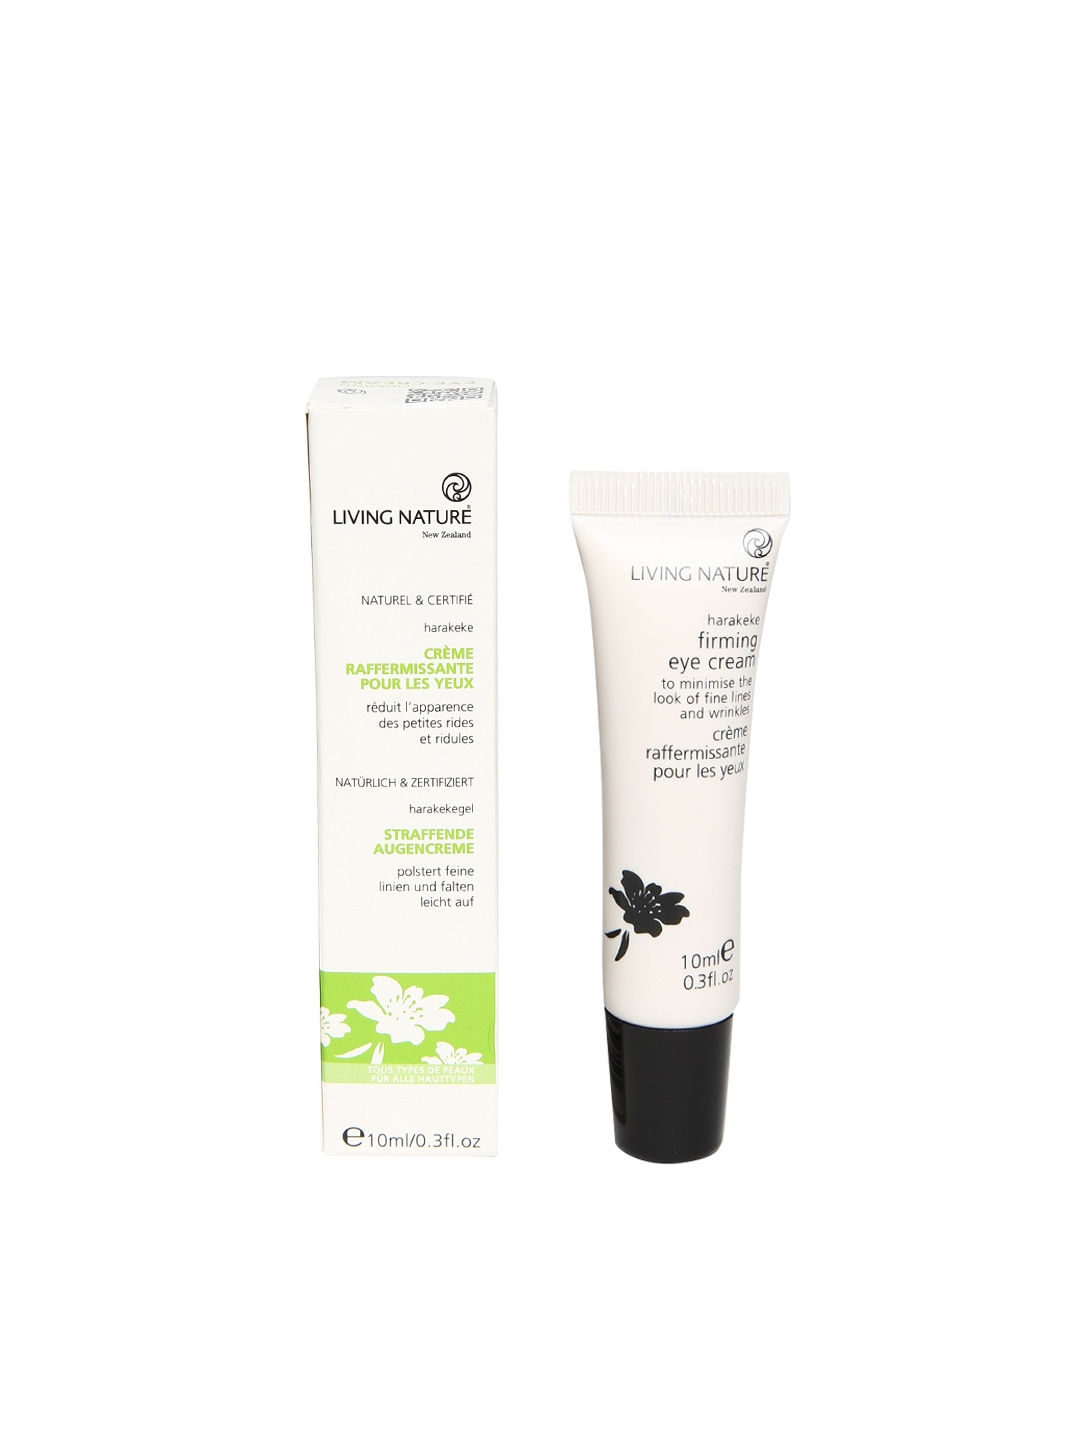 270145677626359525 further Articles soldes jusqu a epuisement du stock further Living Nature Harakeke Firming Eye Cream Ha e763469 in addition o Vestir Mas Femenina together with Boys Boots. on formal wear tops